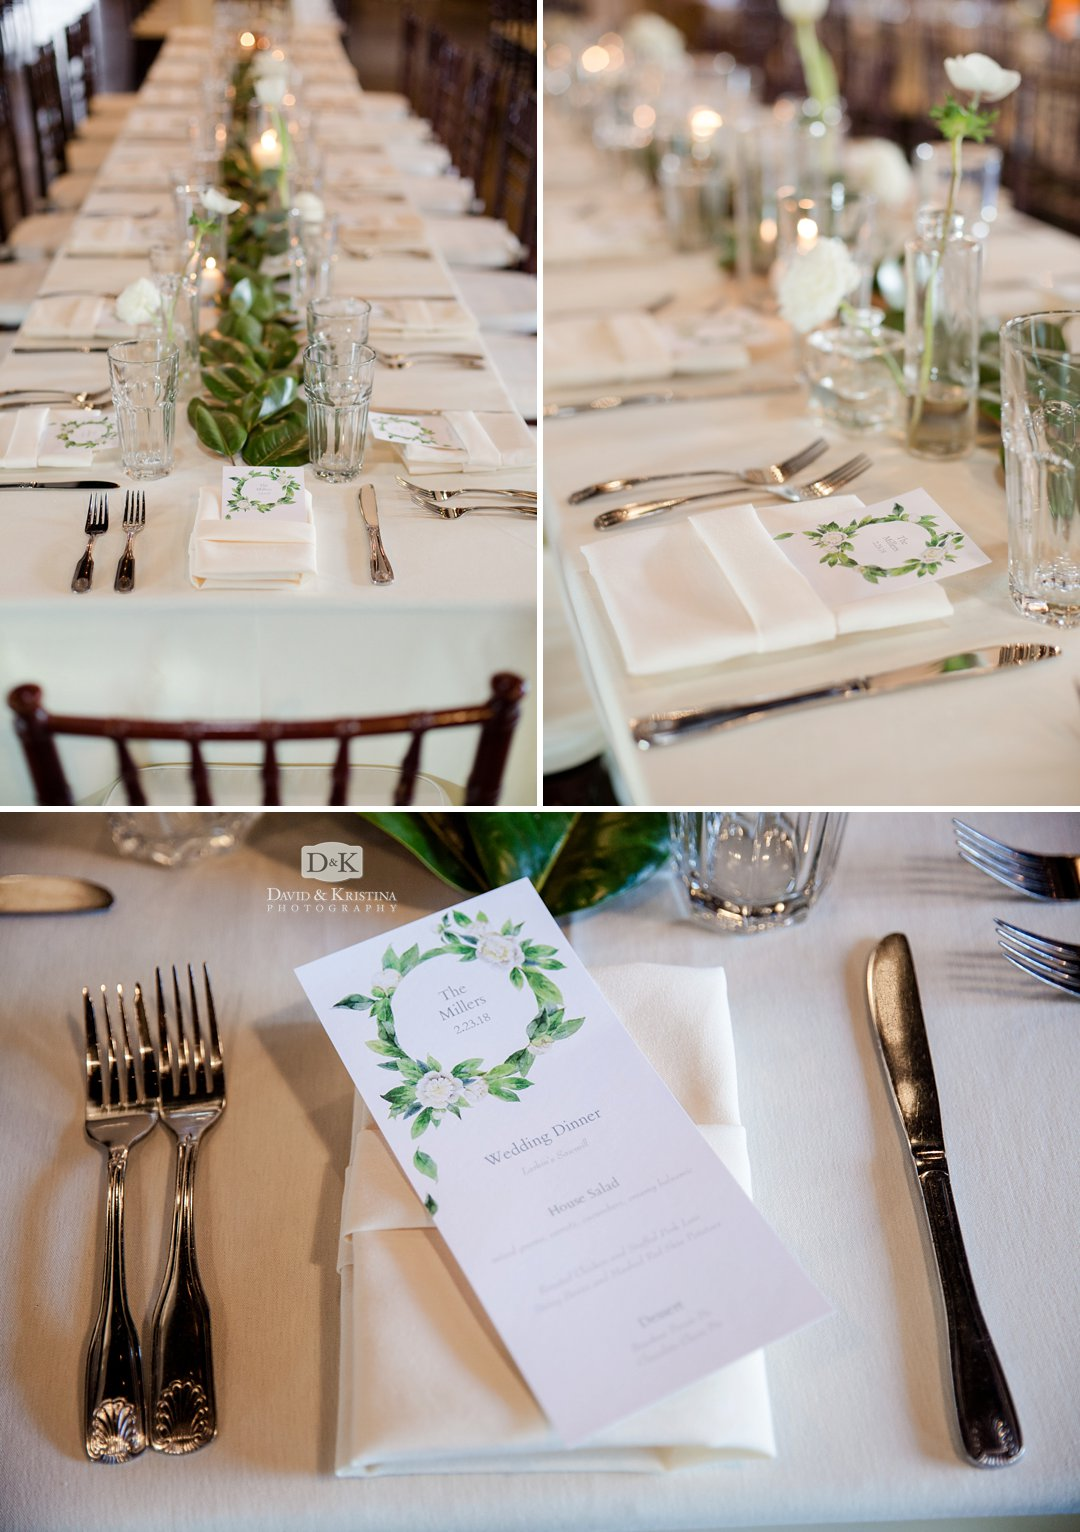 place settings at Larkin's Sawmill wedding reception